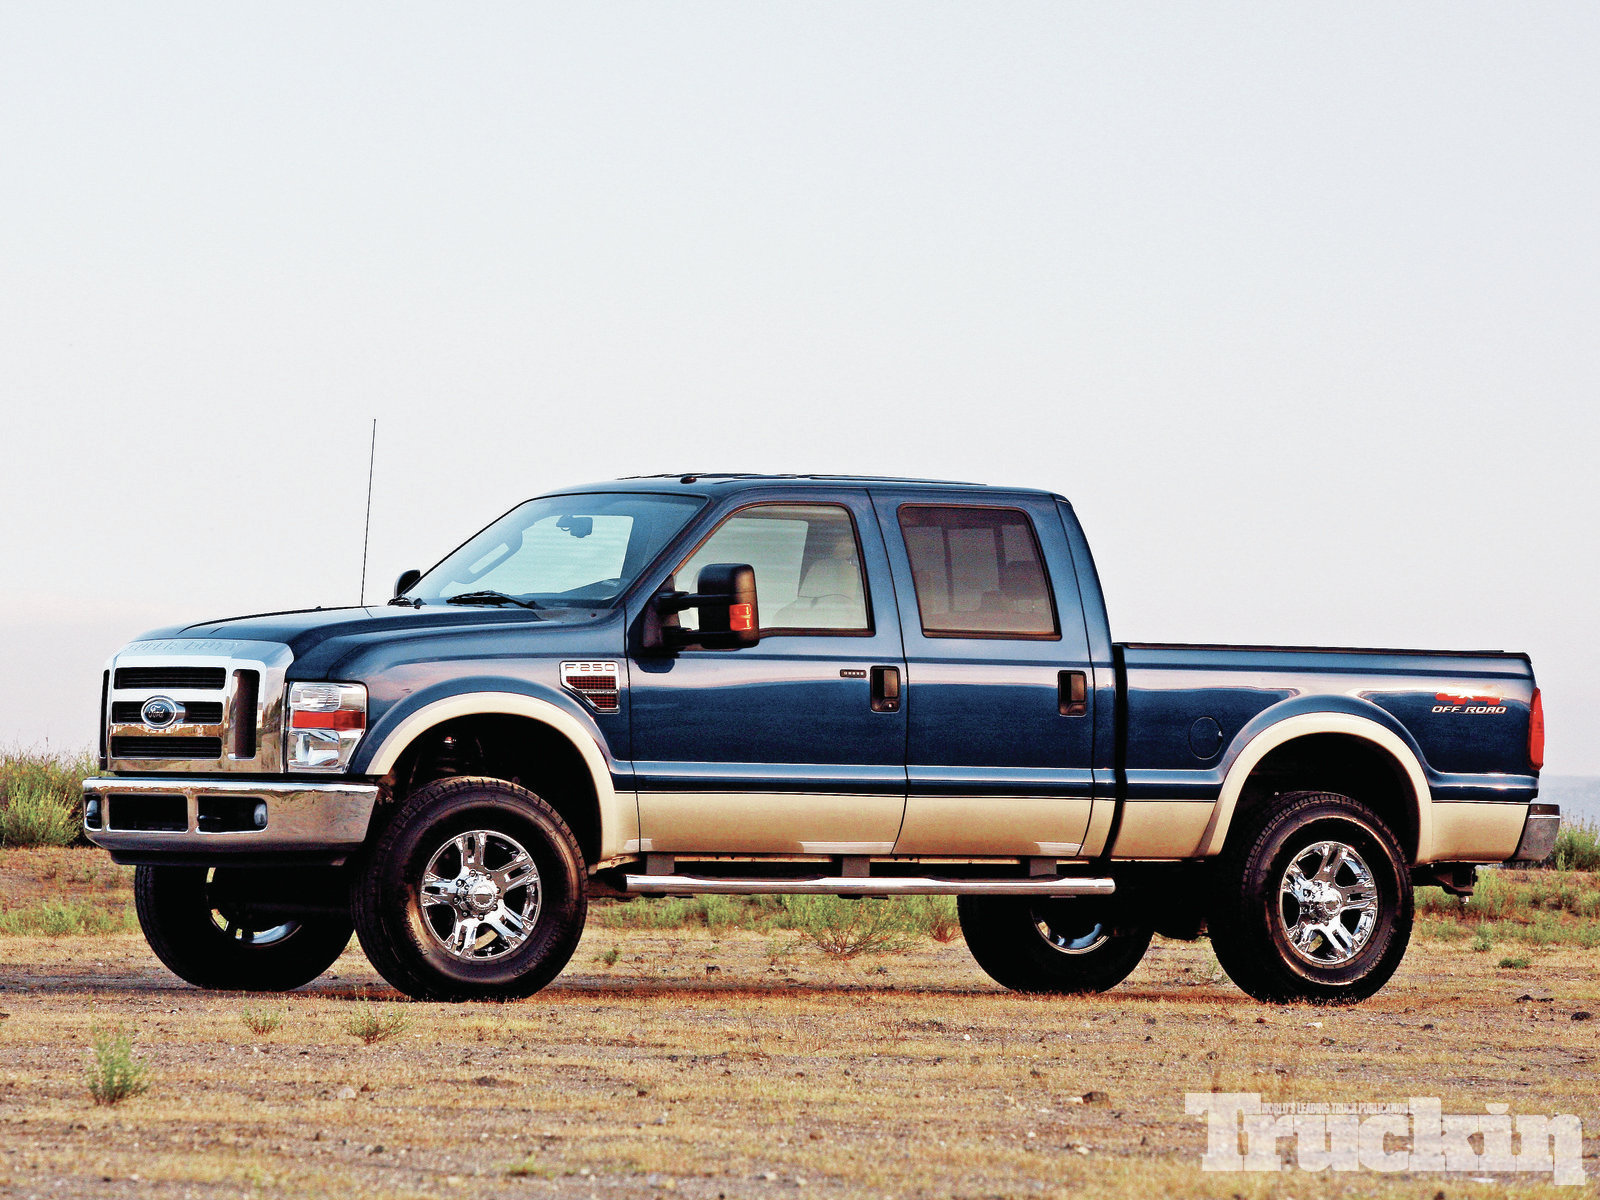 2009 ford f 250 super duty information and photos zombiedrive. Black Bedroom Furniture Sets. Home Design Ideas